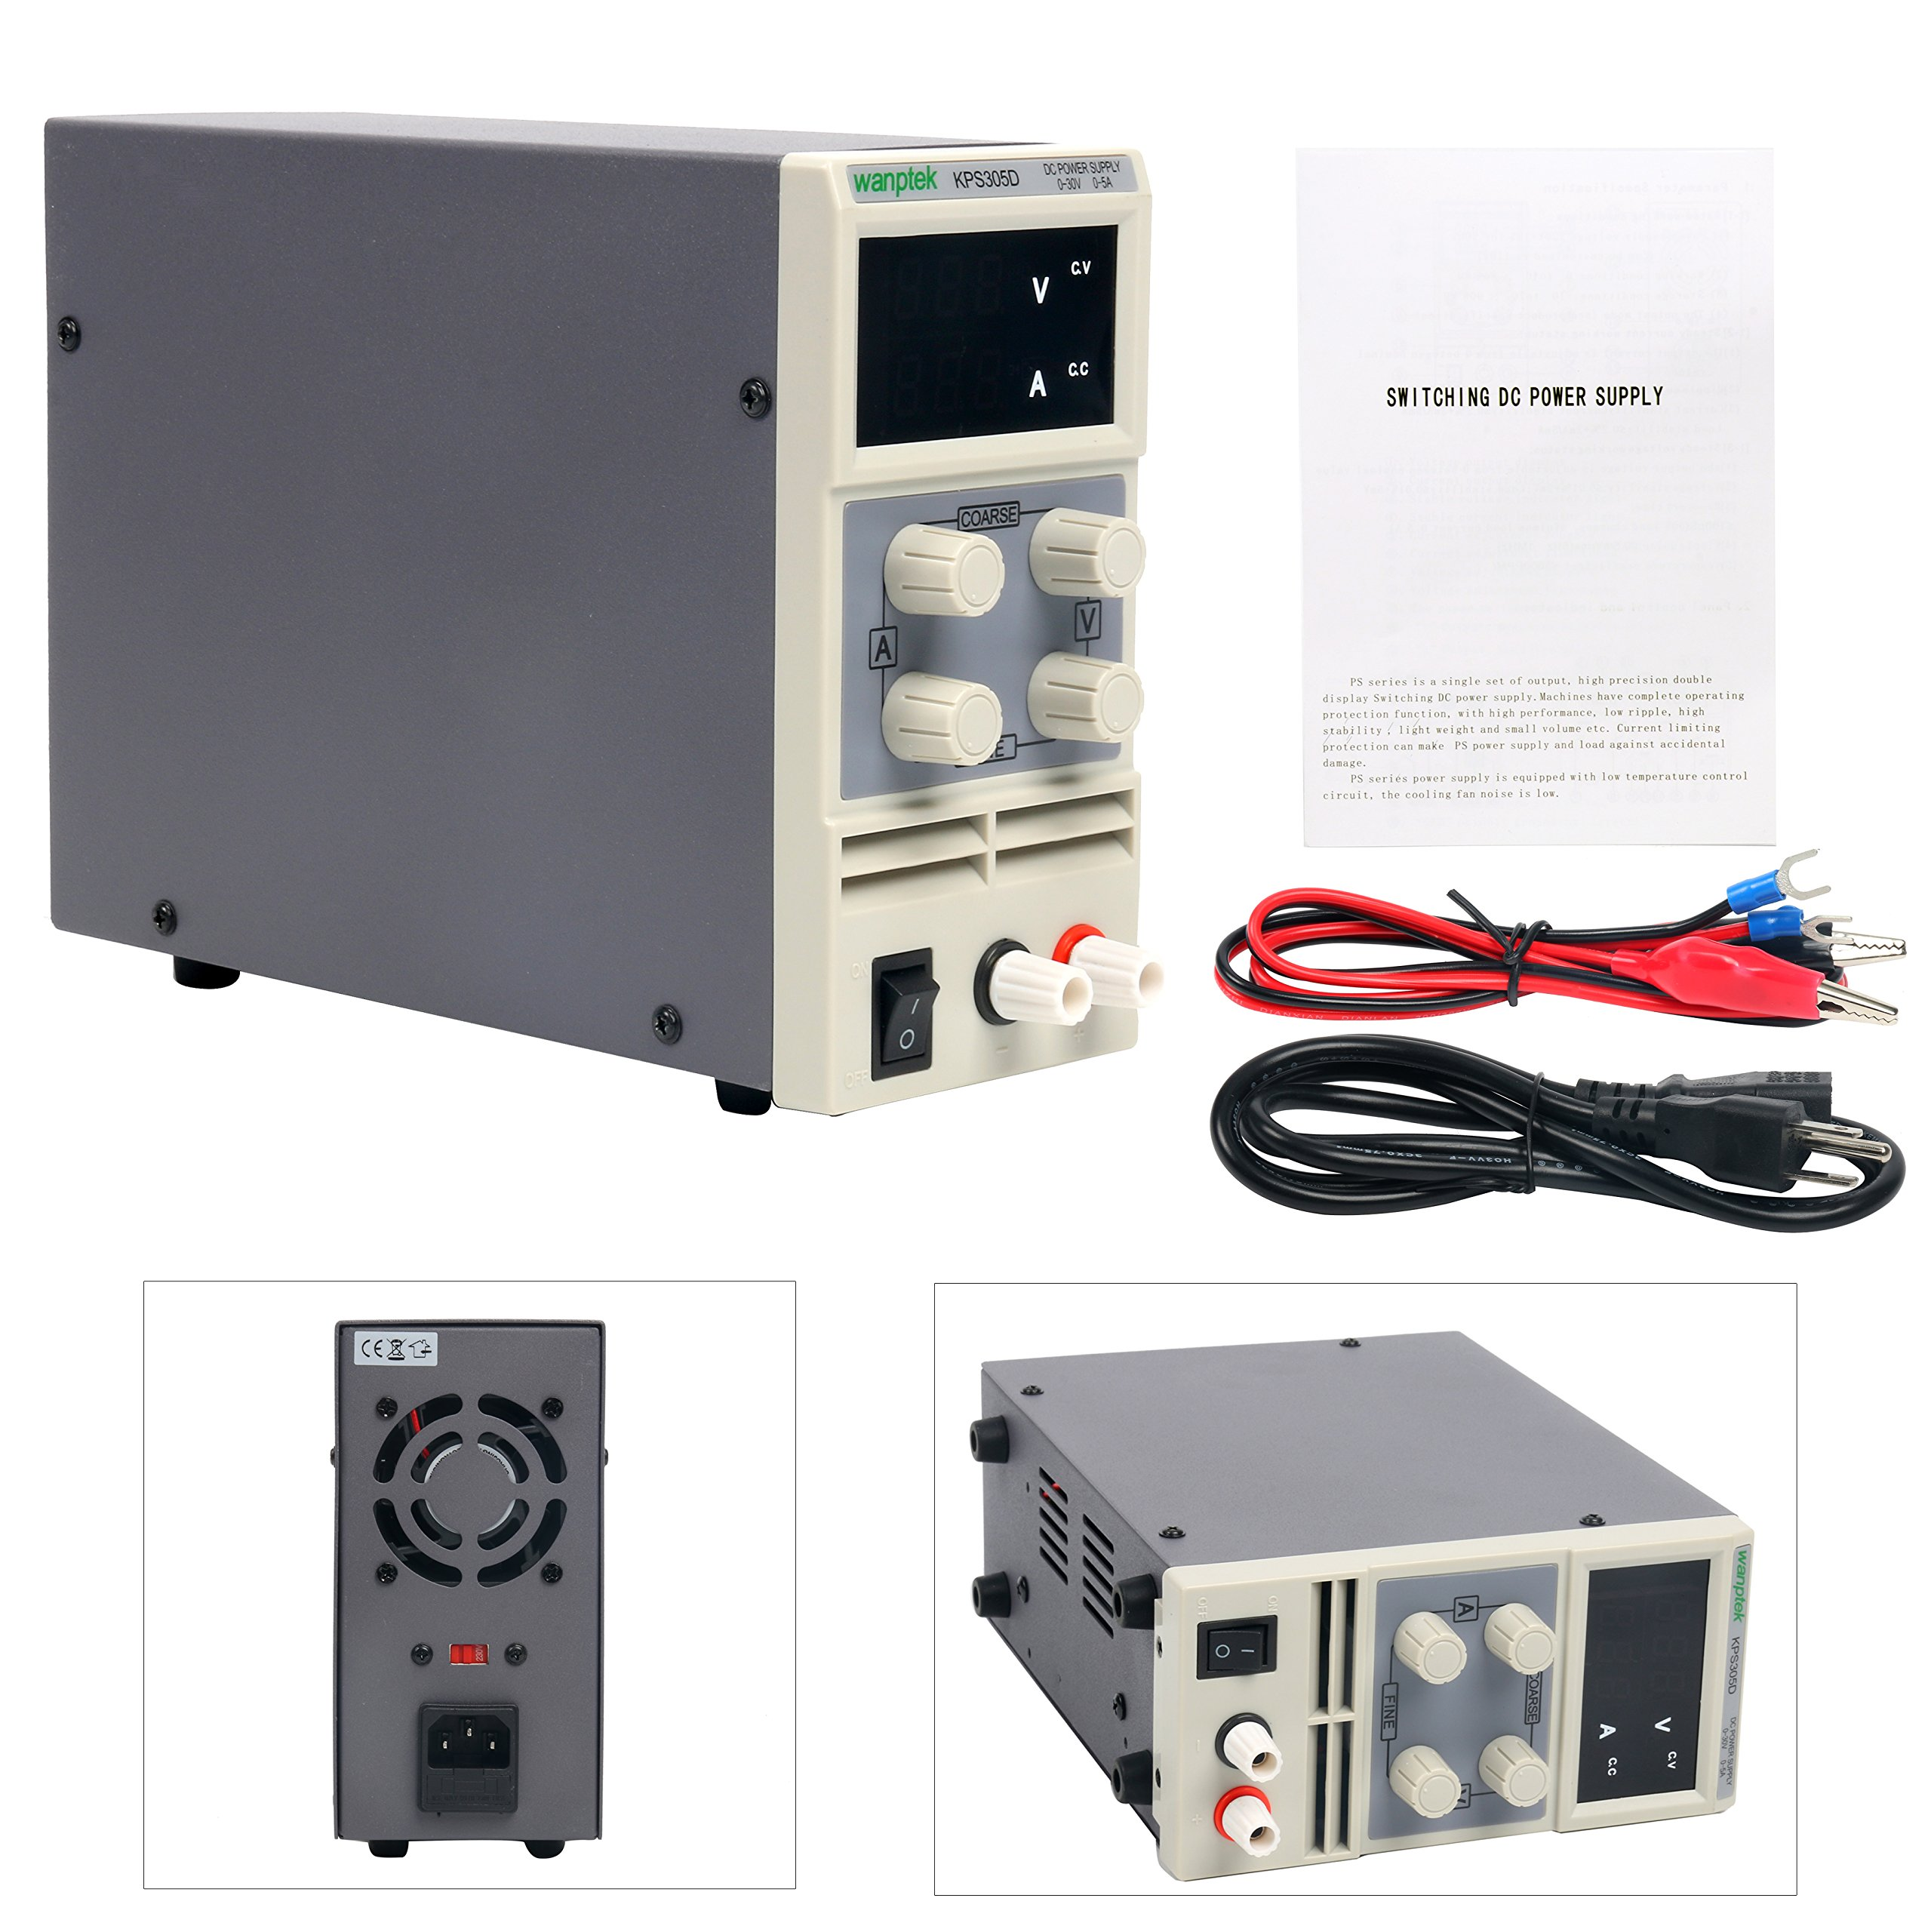 DC Power Supply Variable, YaeCCC WanpTek KPS305D Adjustable Switching Regulated Power Supply Digital, 0-30 V 0-5 A with Alligator Leads US Power Cord